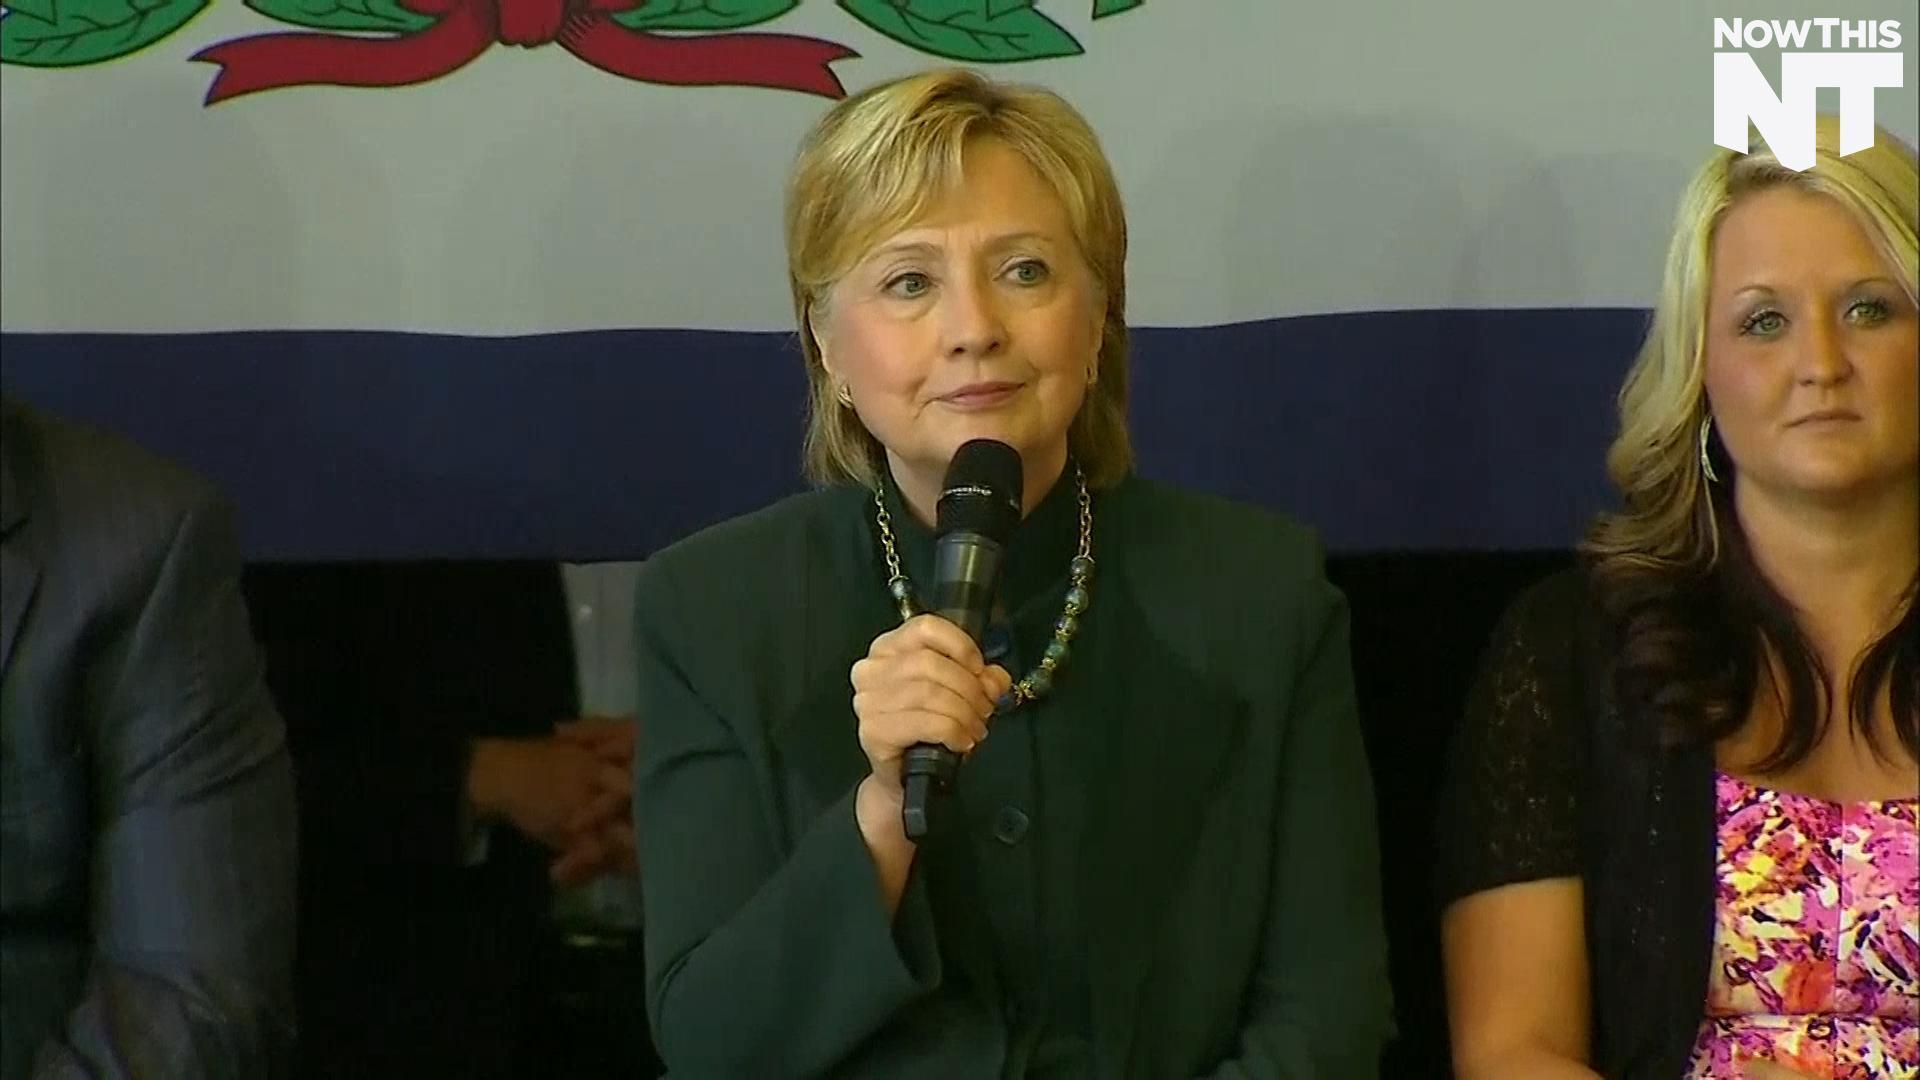 Clinton Opens Up About How Opioid Overdose Has Affected Loved Ones